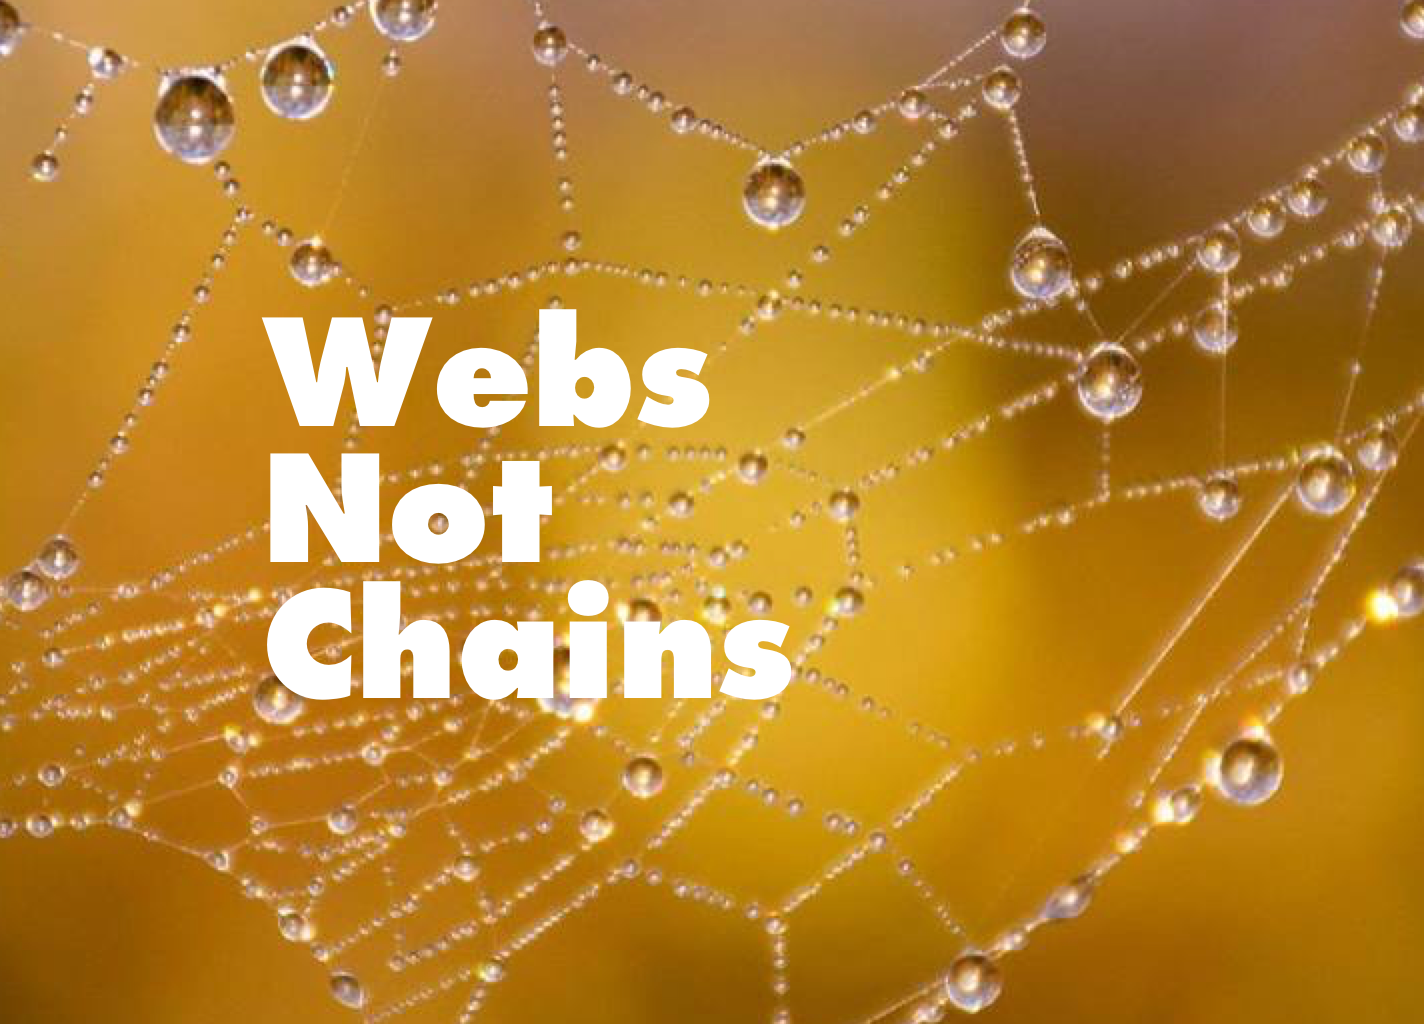 Webs Not Chains